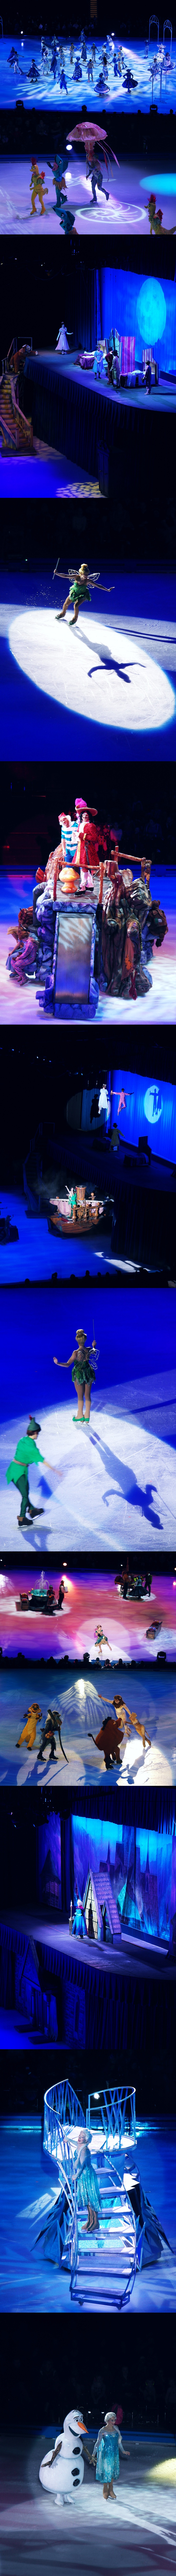 Disney on Ice-down